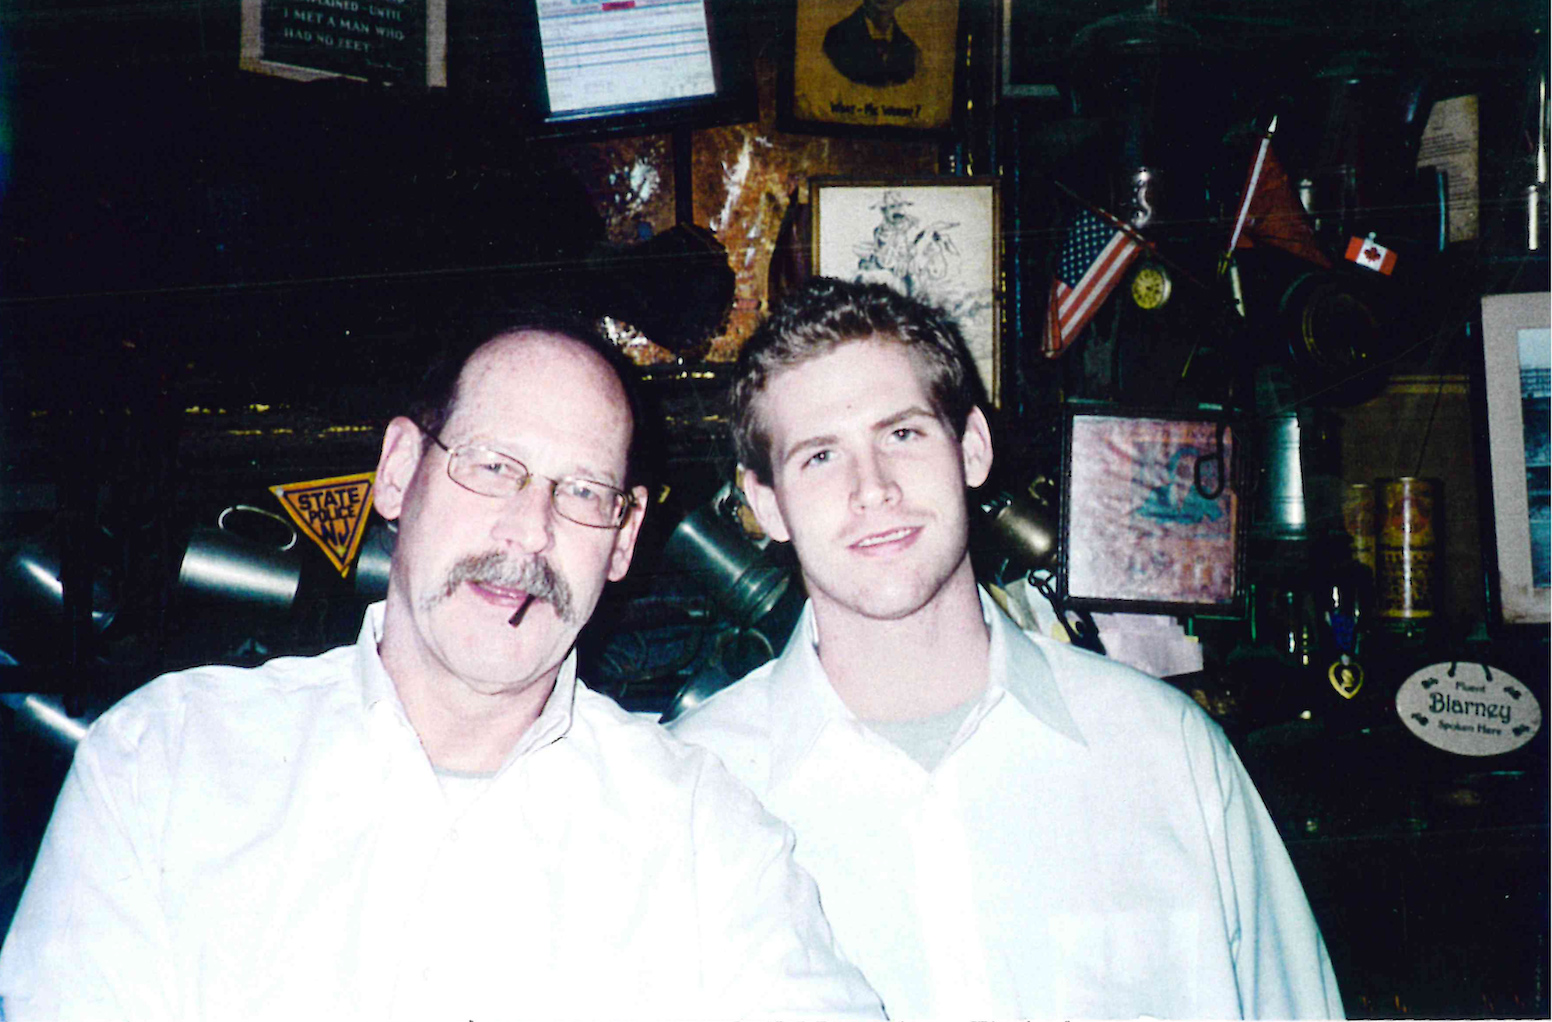 Behind the bar at McSorley's in 2006.